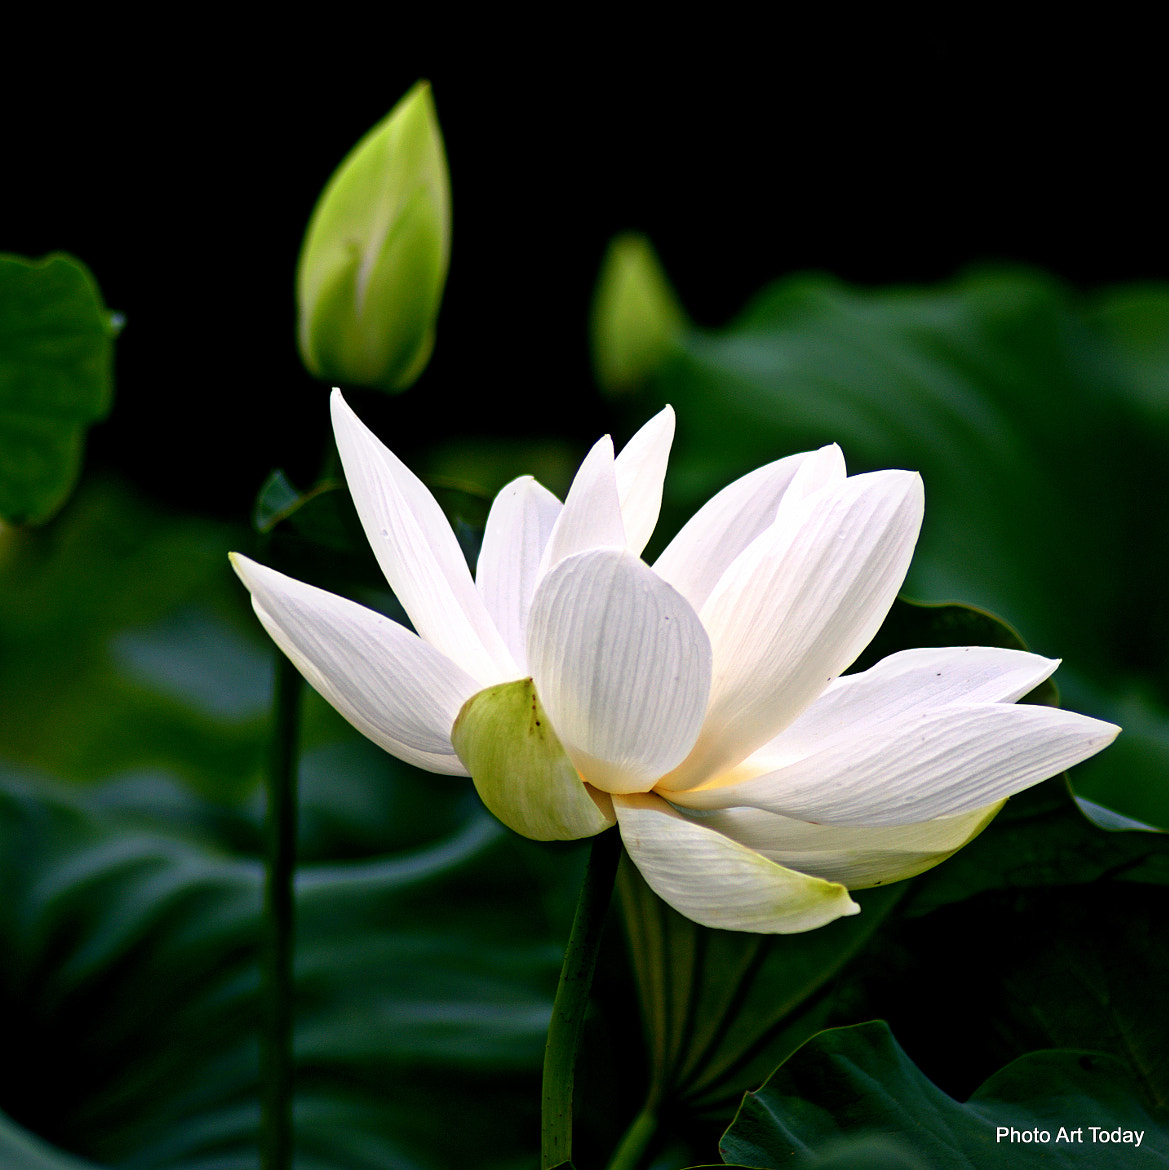 Photograph Lotus Flower by Andrew Dutton on 500px